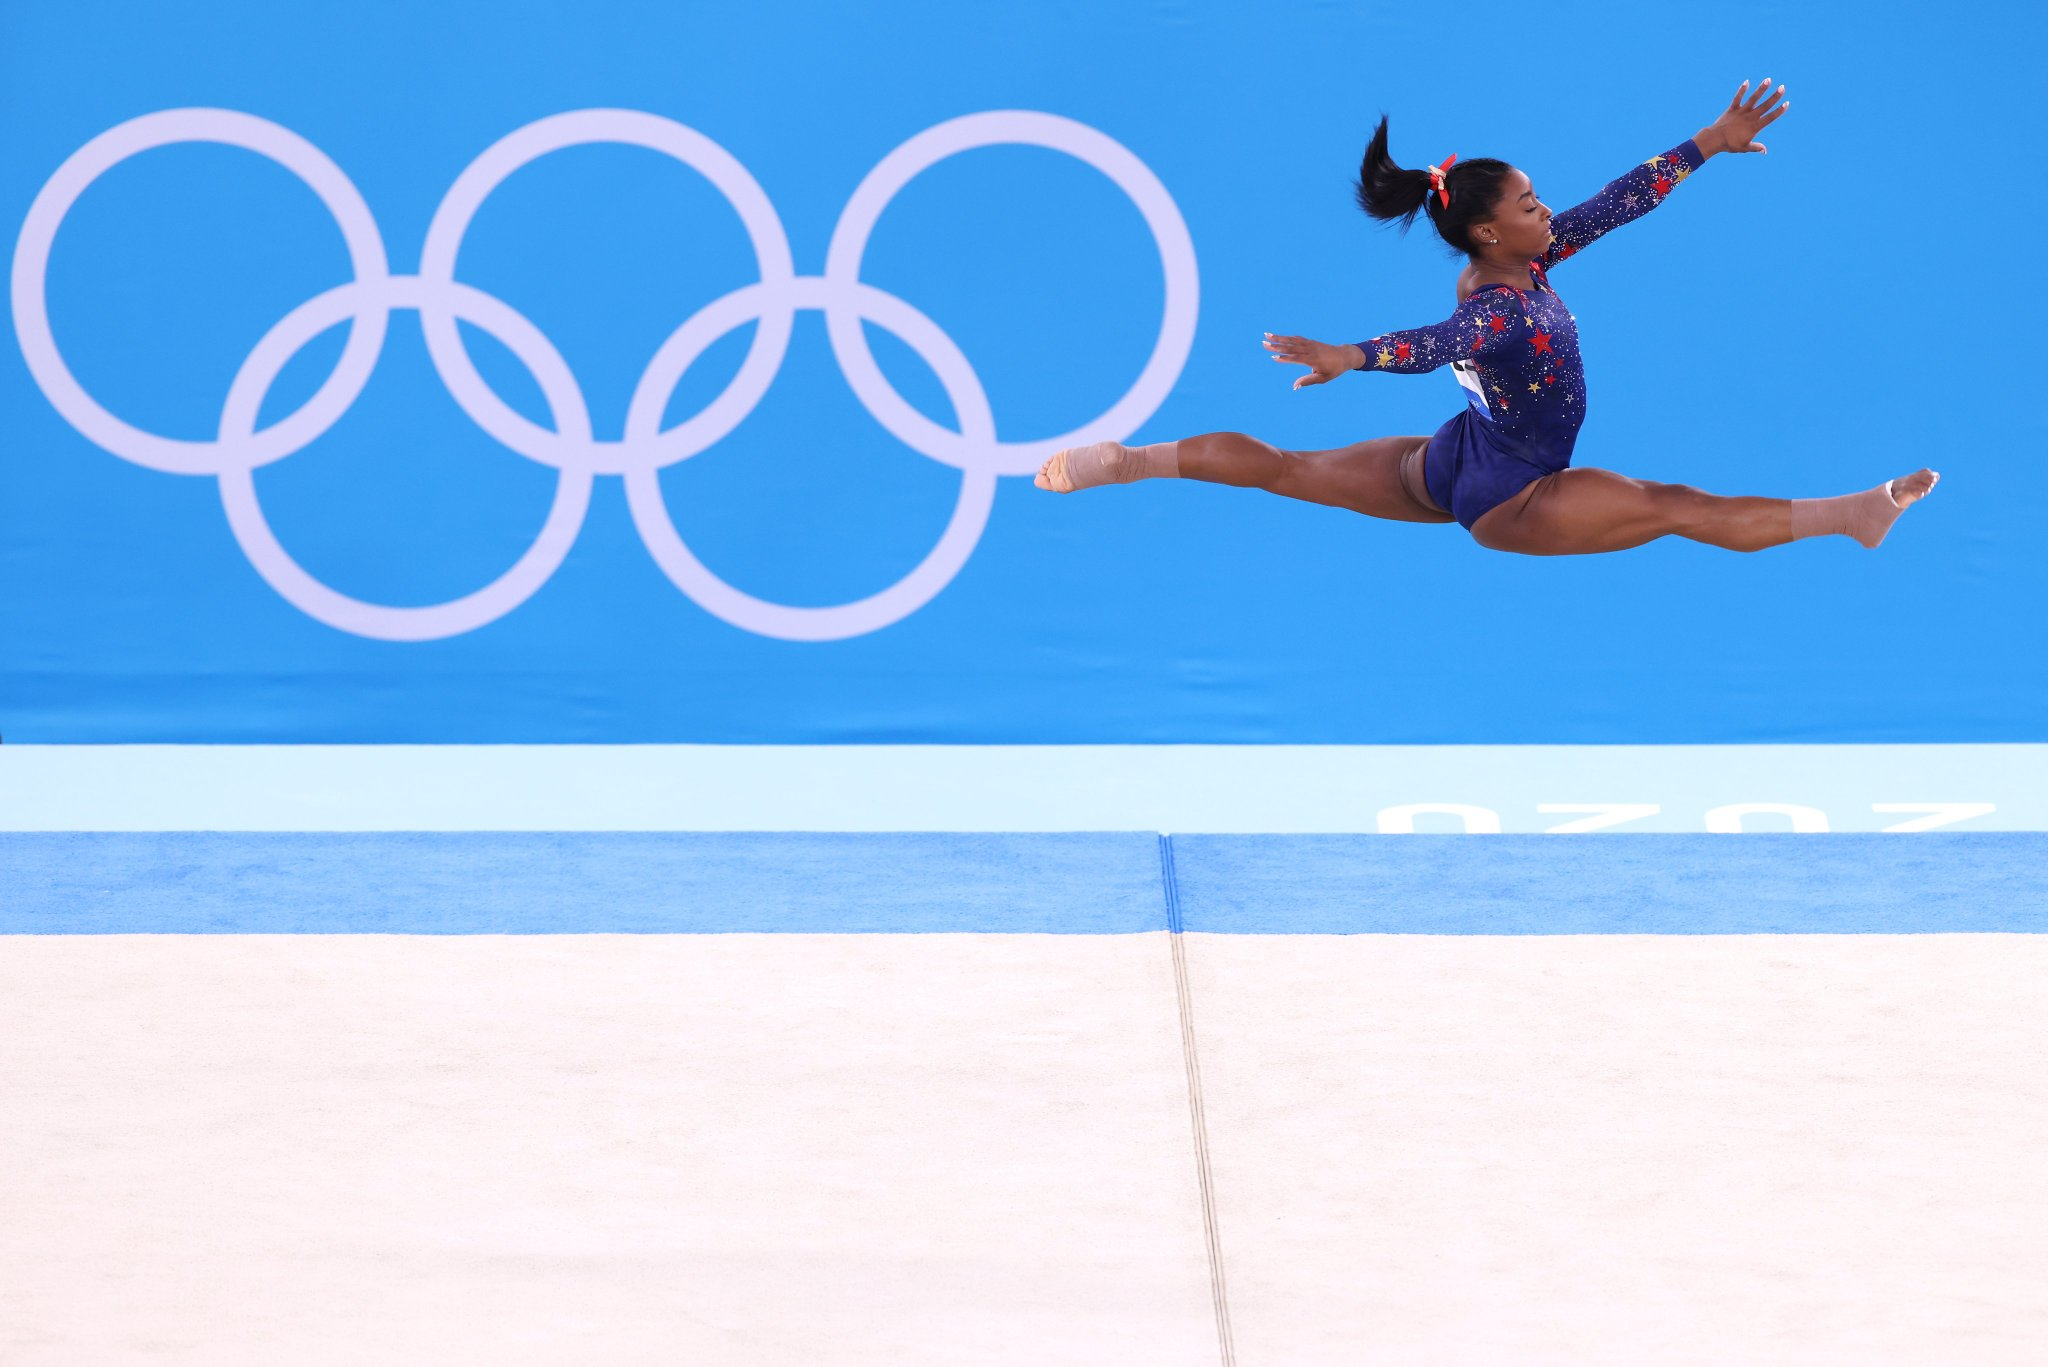 Simone Biles mid air in a split during her gymnastics routine at the 2020 Summer Olympics.